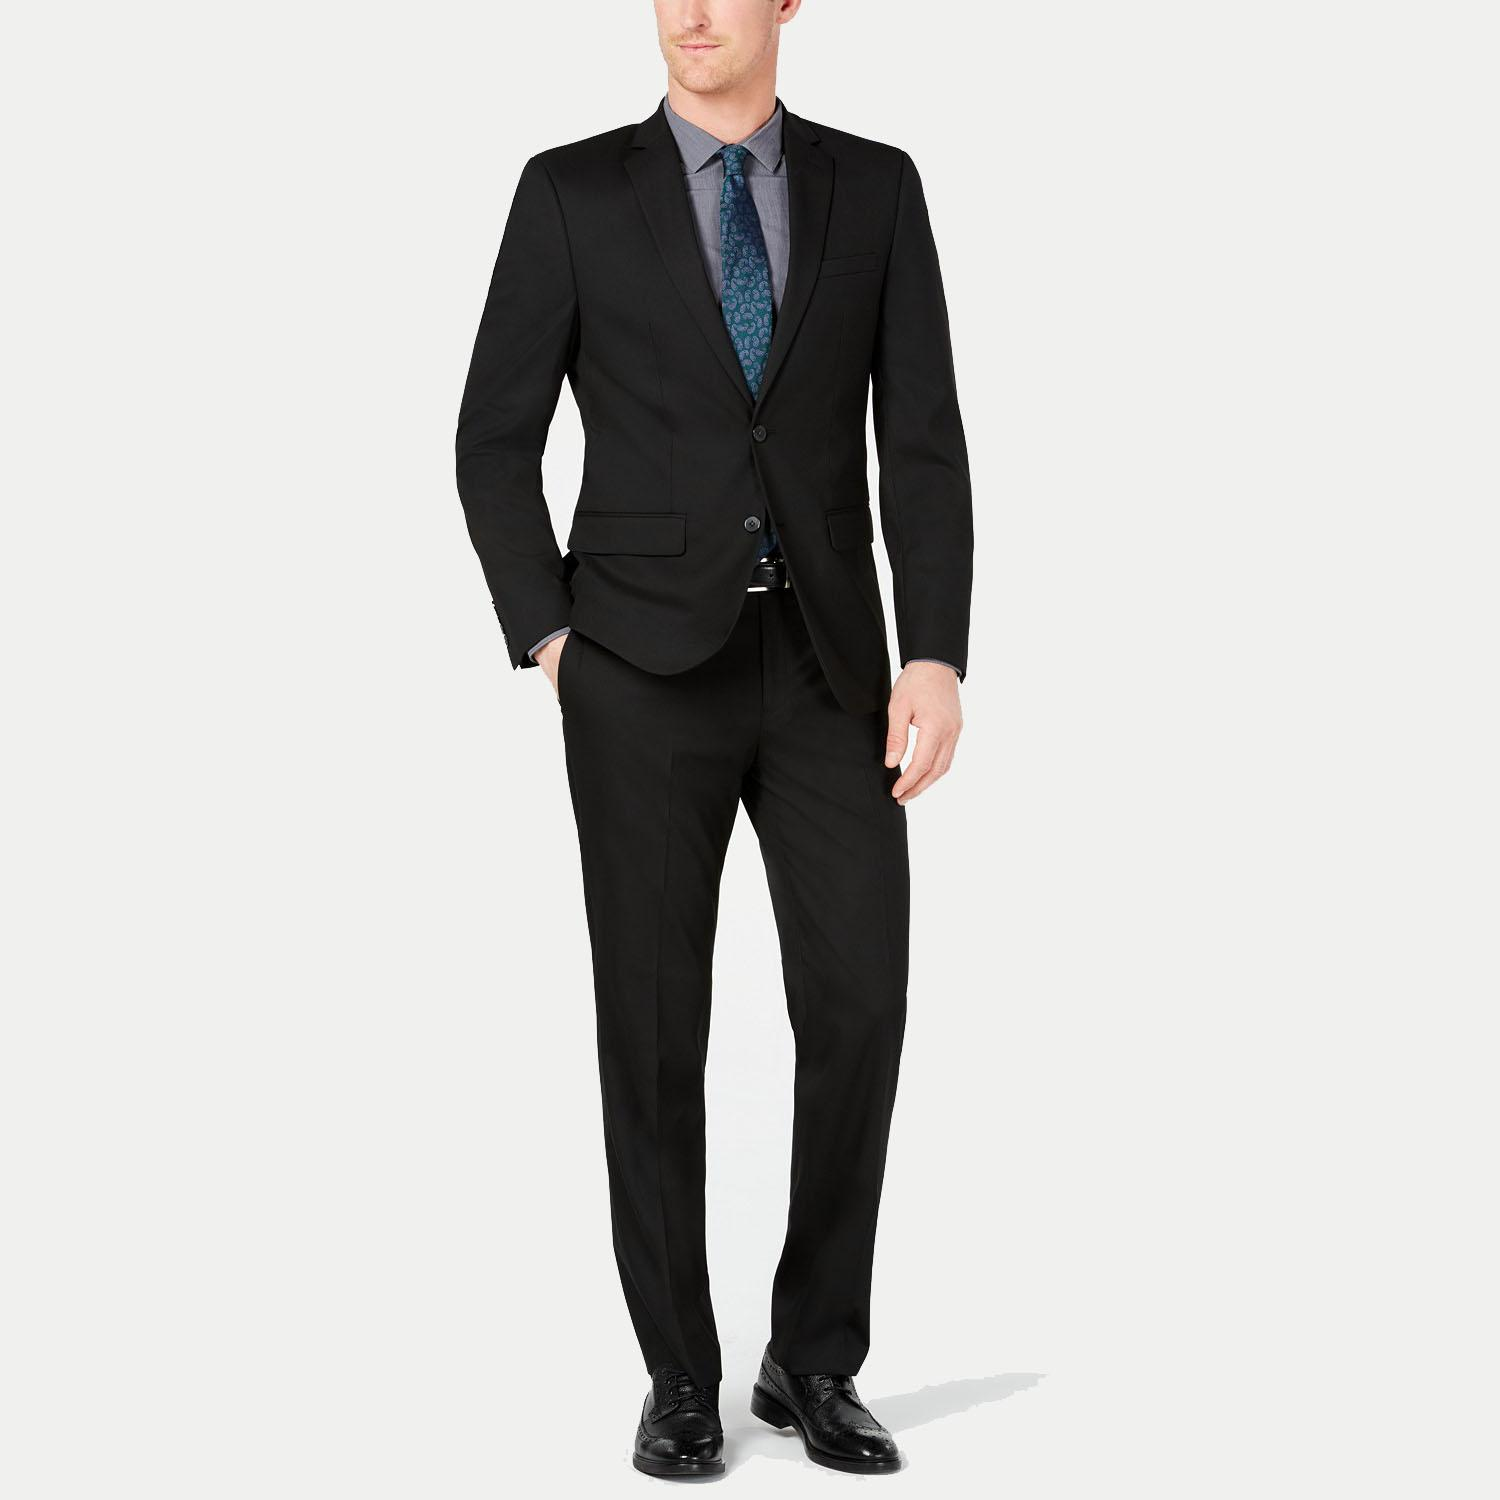 Van Heusen Slim-Fit Flex Stretch Wrinkle-Resistant Solid Suit for $79.99 Shipped